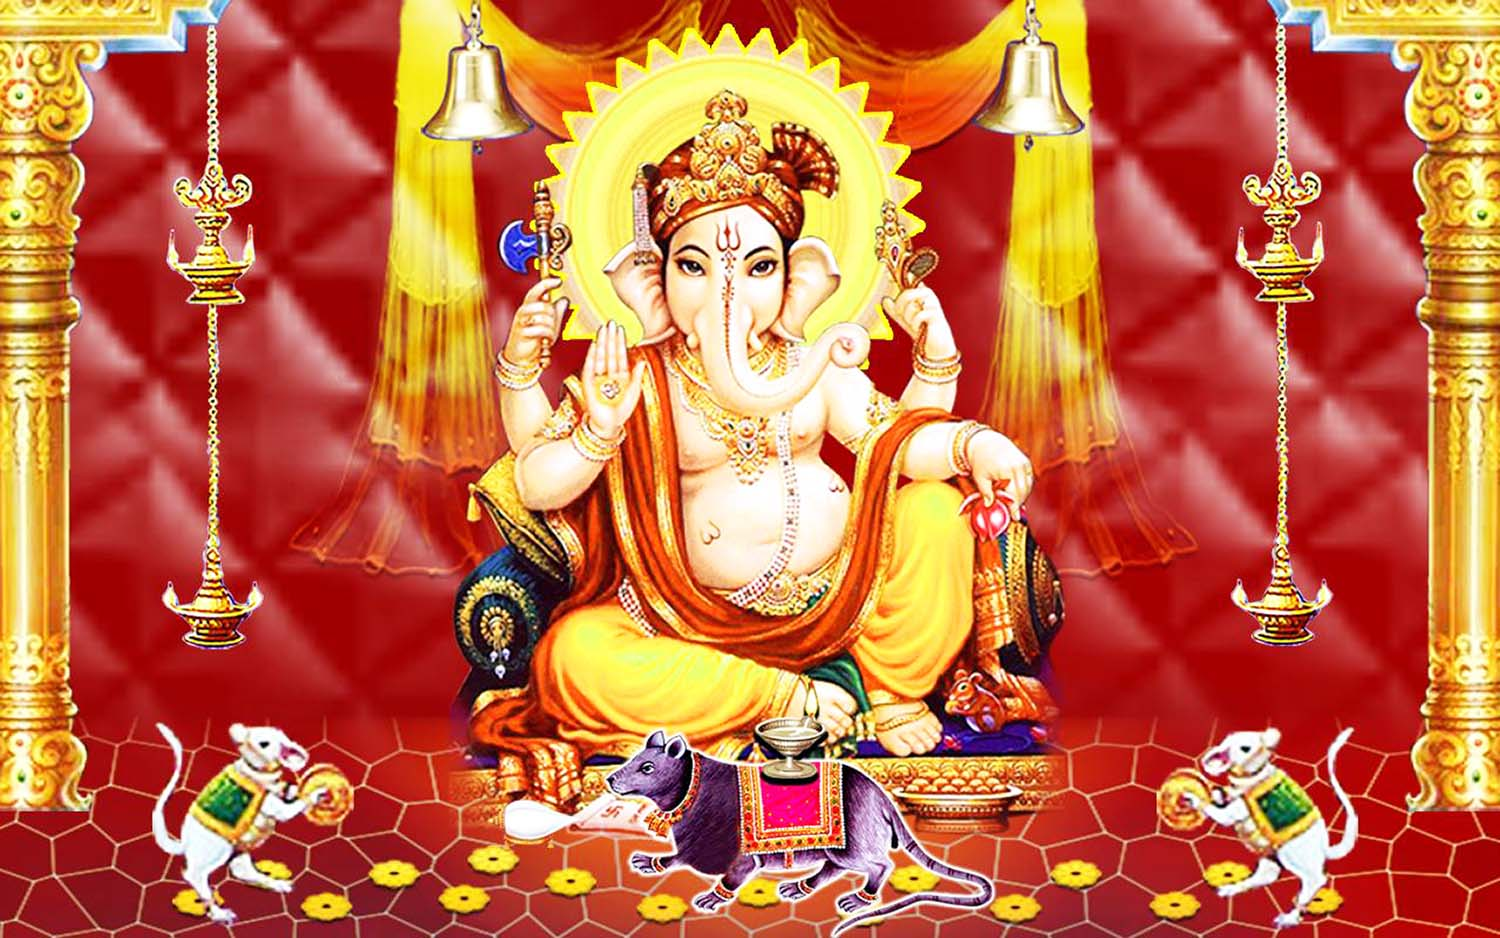 Lord Vinayak chaturthi image with mushak